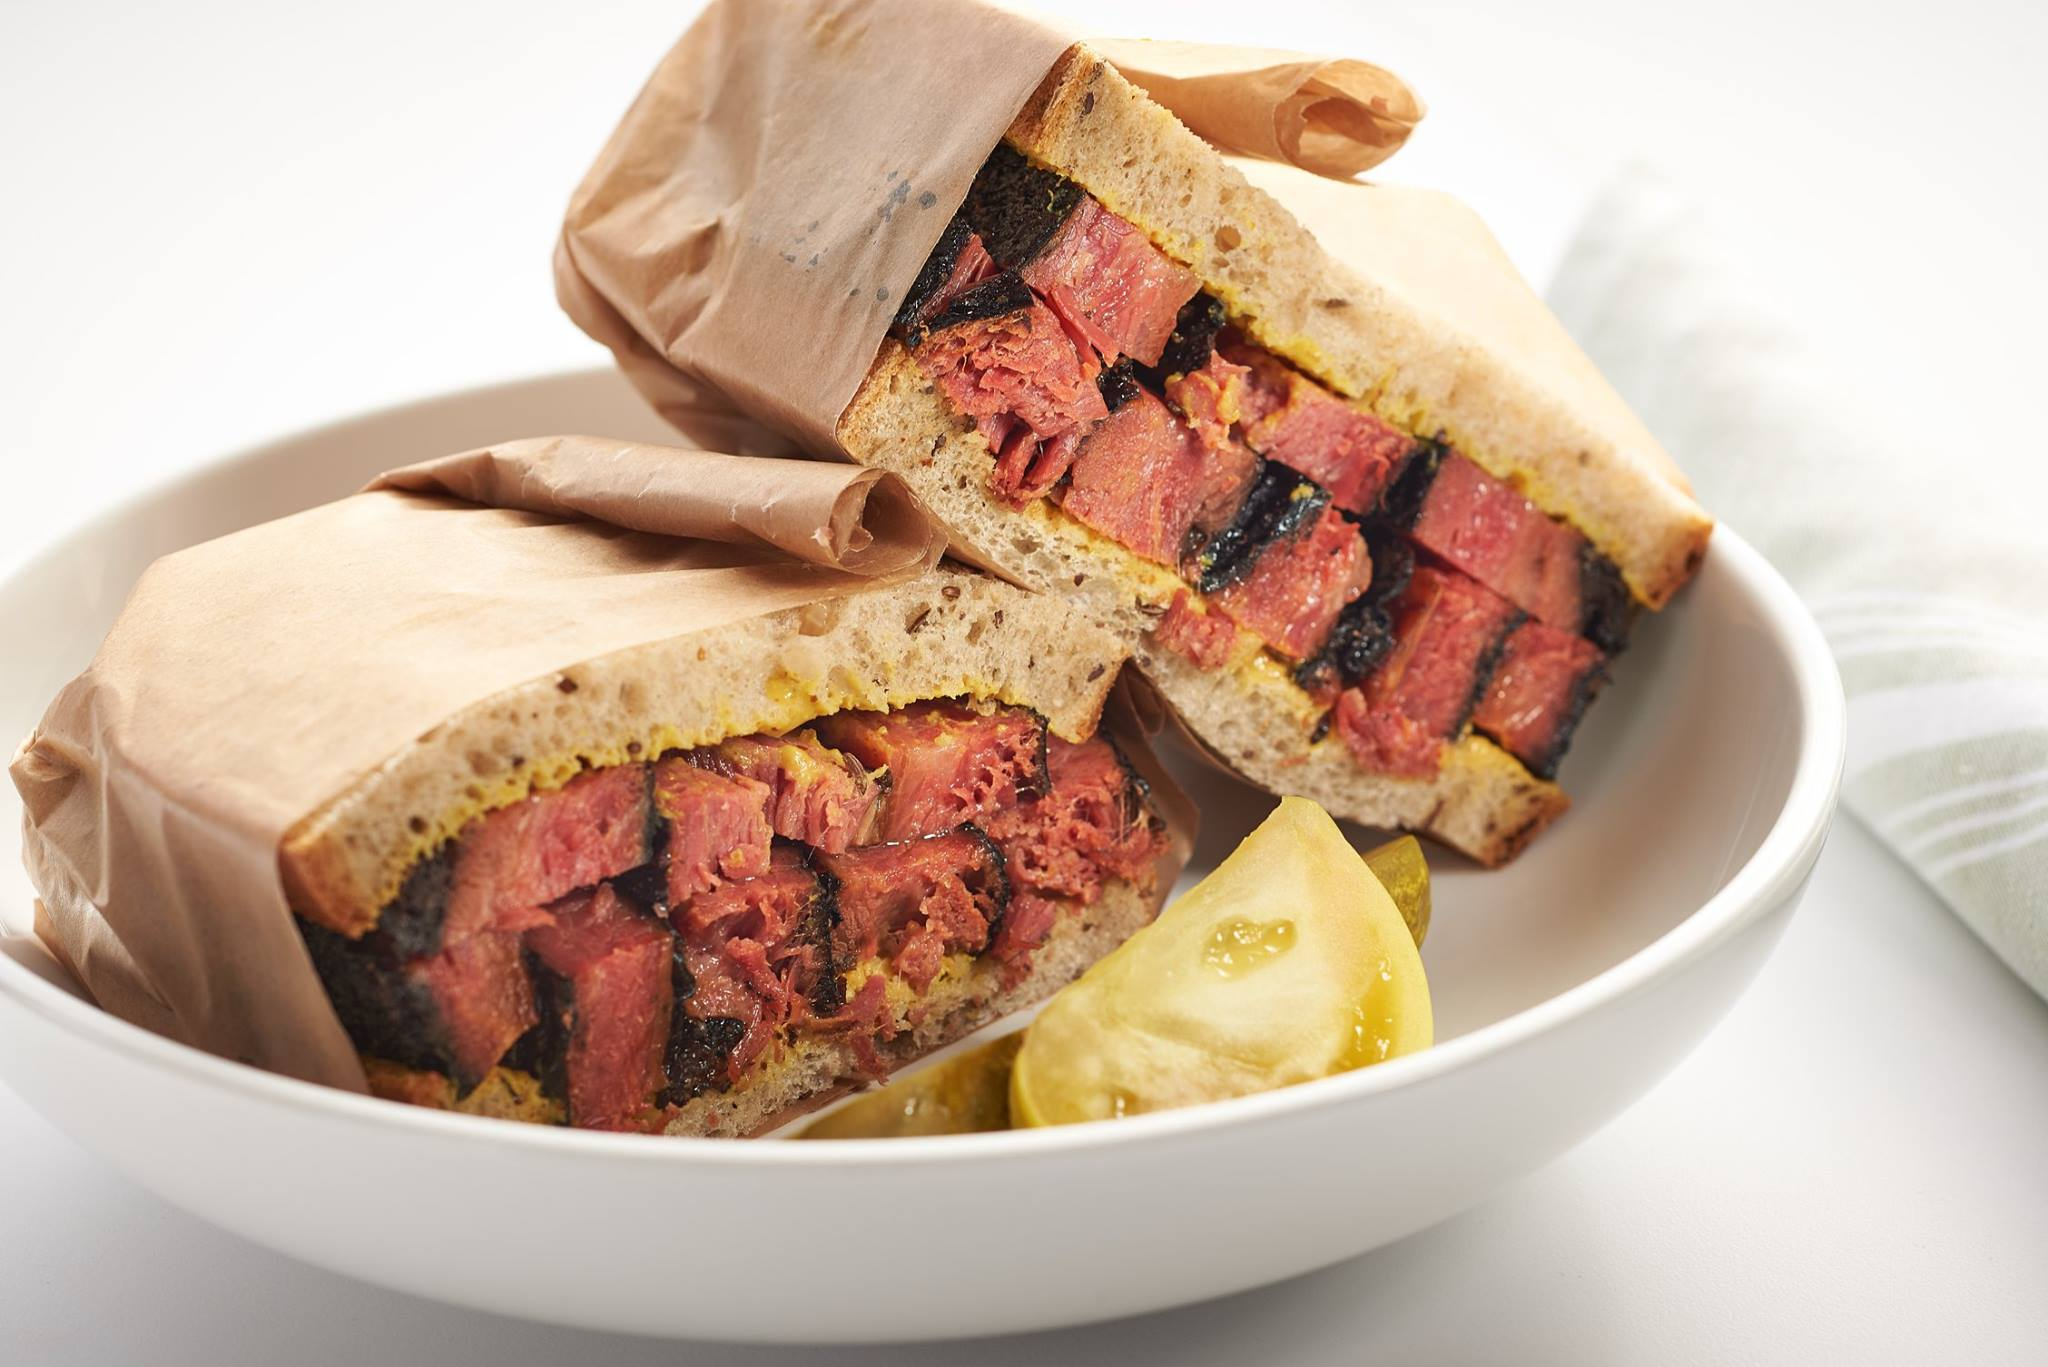 Thick cut pastrami on rye bread, wrapped in brown paper and served on a white plate on a white background.